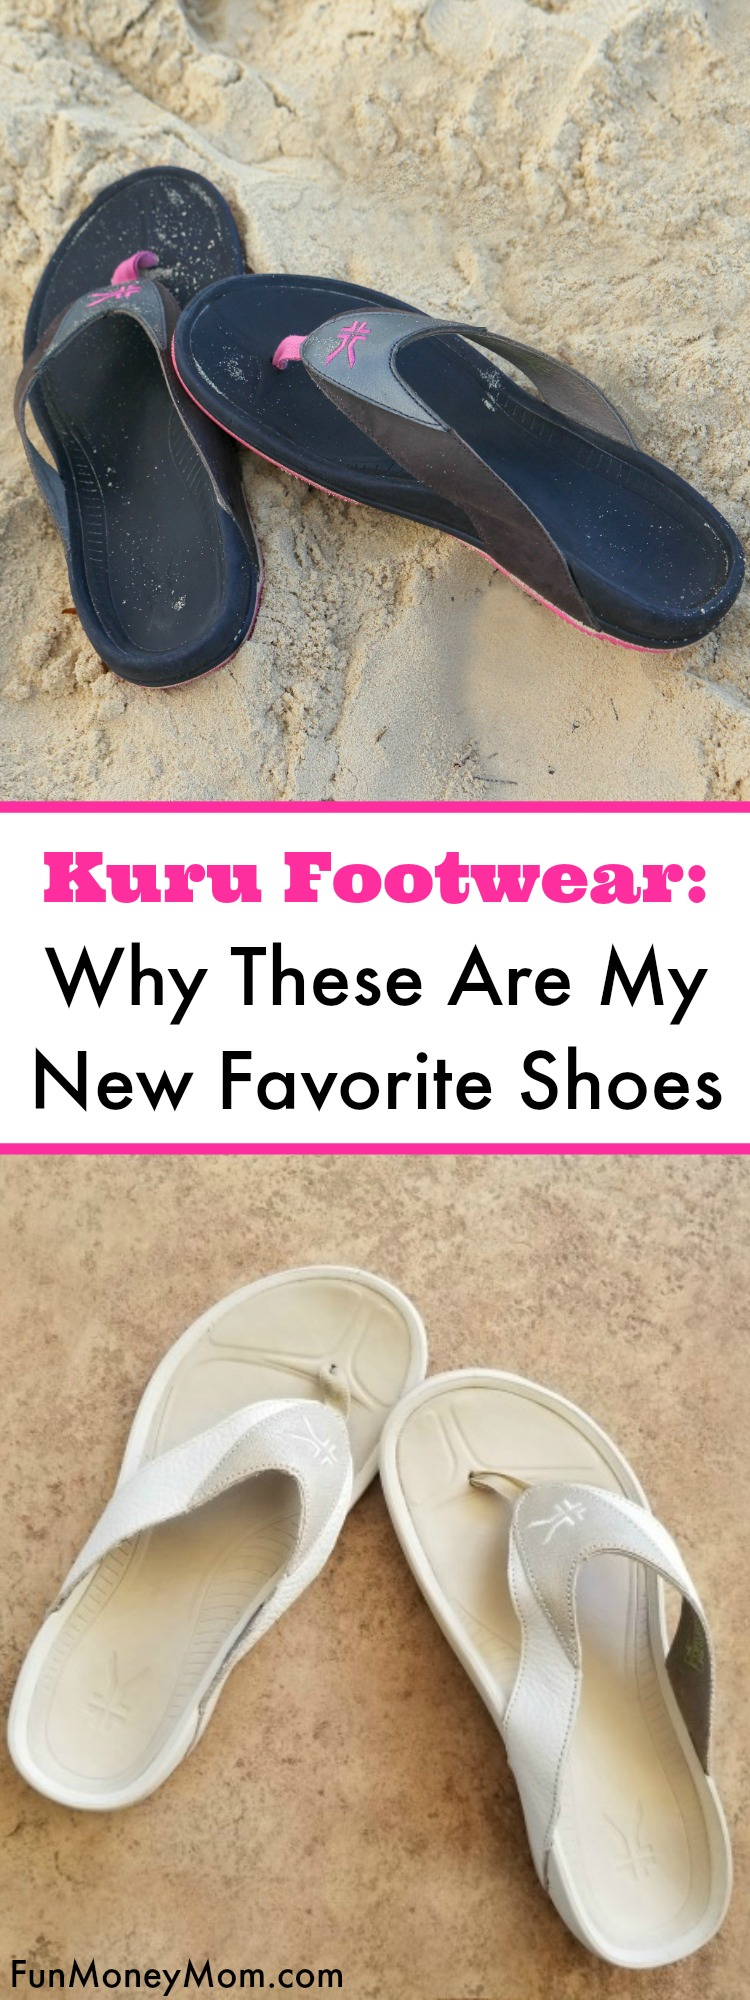 When I was diagnosed with planters fasciitis, I wasn't happy about having to give up my flimsy flip flops. That was until I discovered my new favorite shoe. Check out my Kuru footwear review so see why I'm wearing these pretty much every day now! #ad